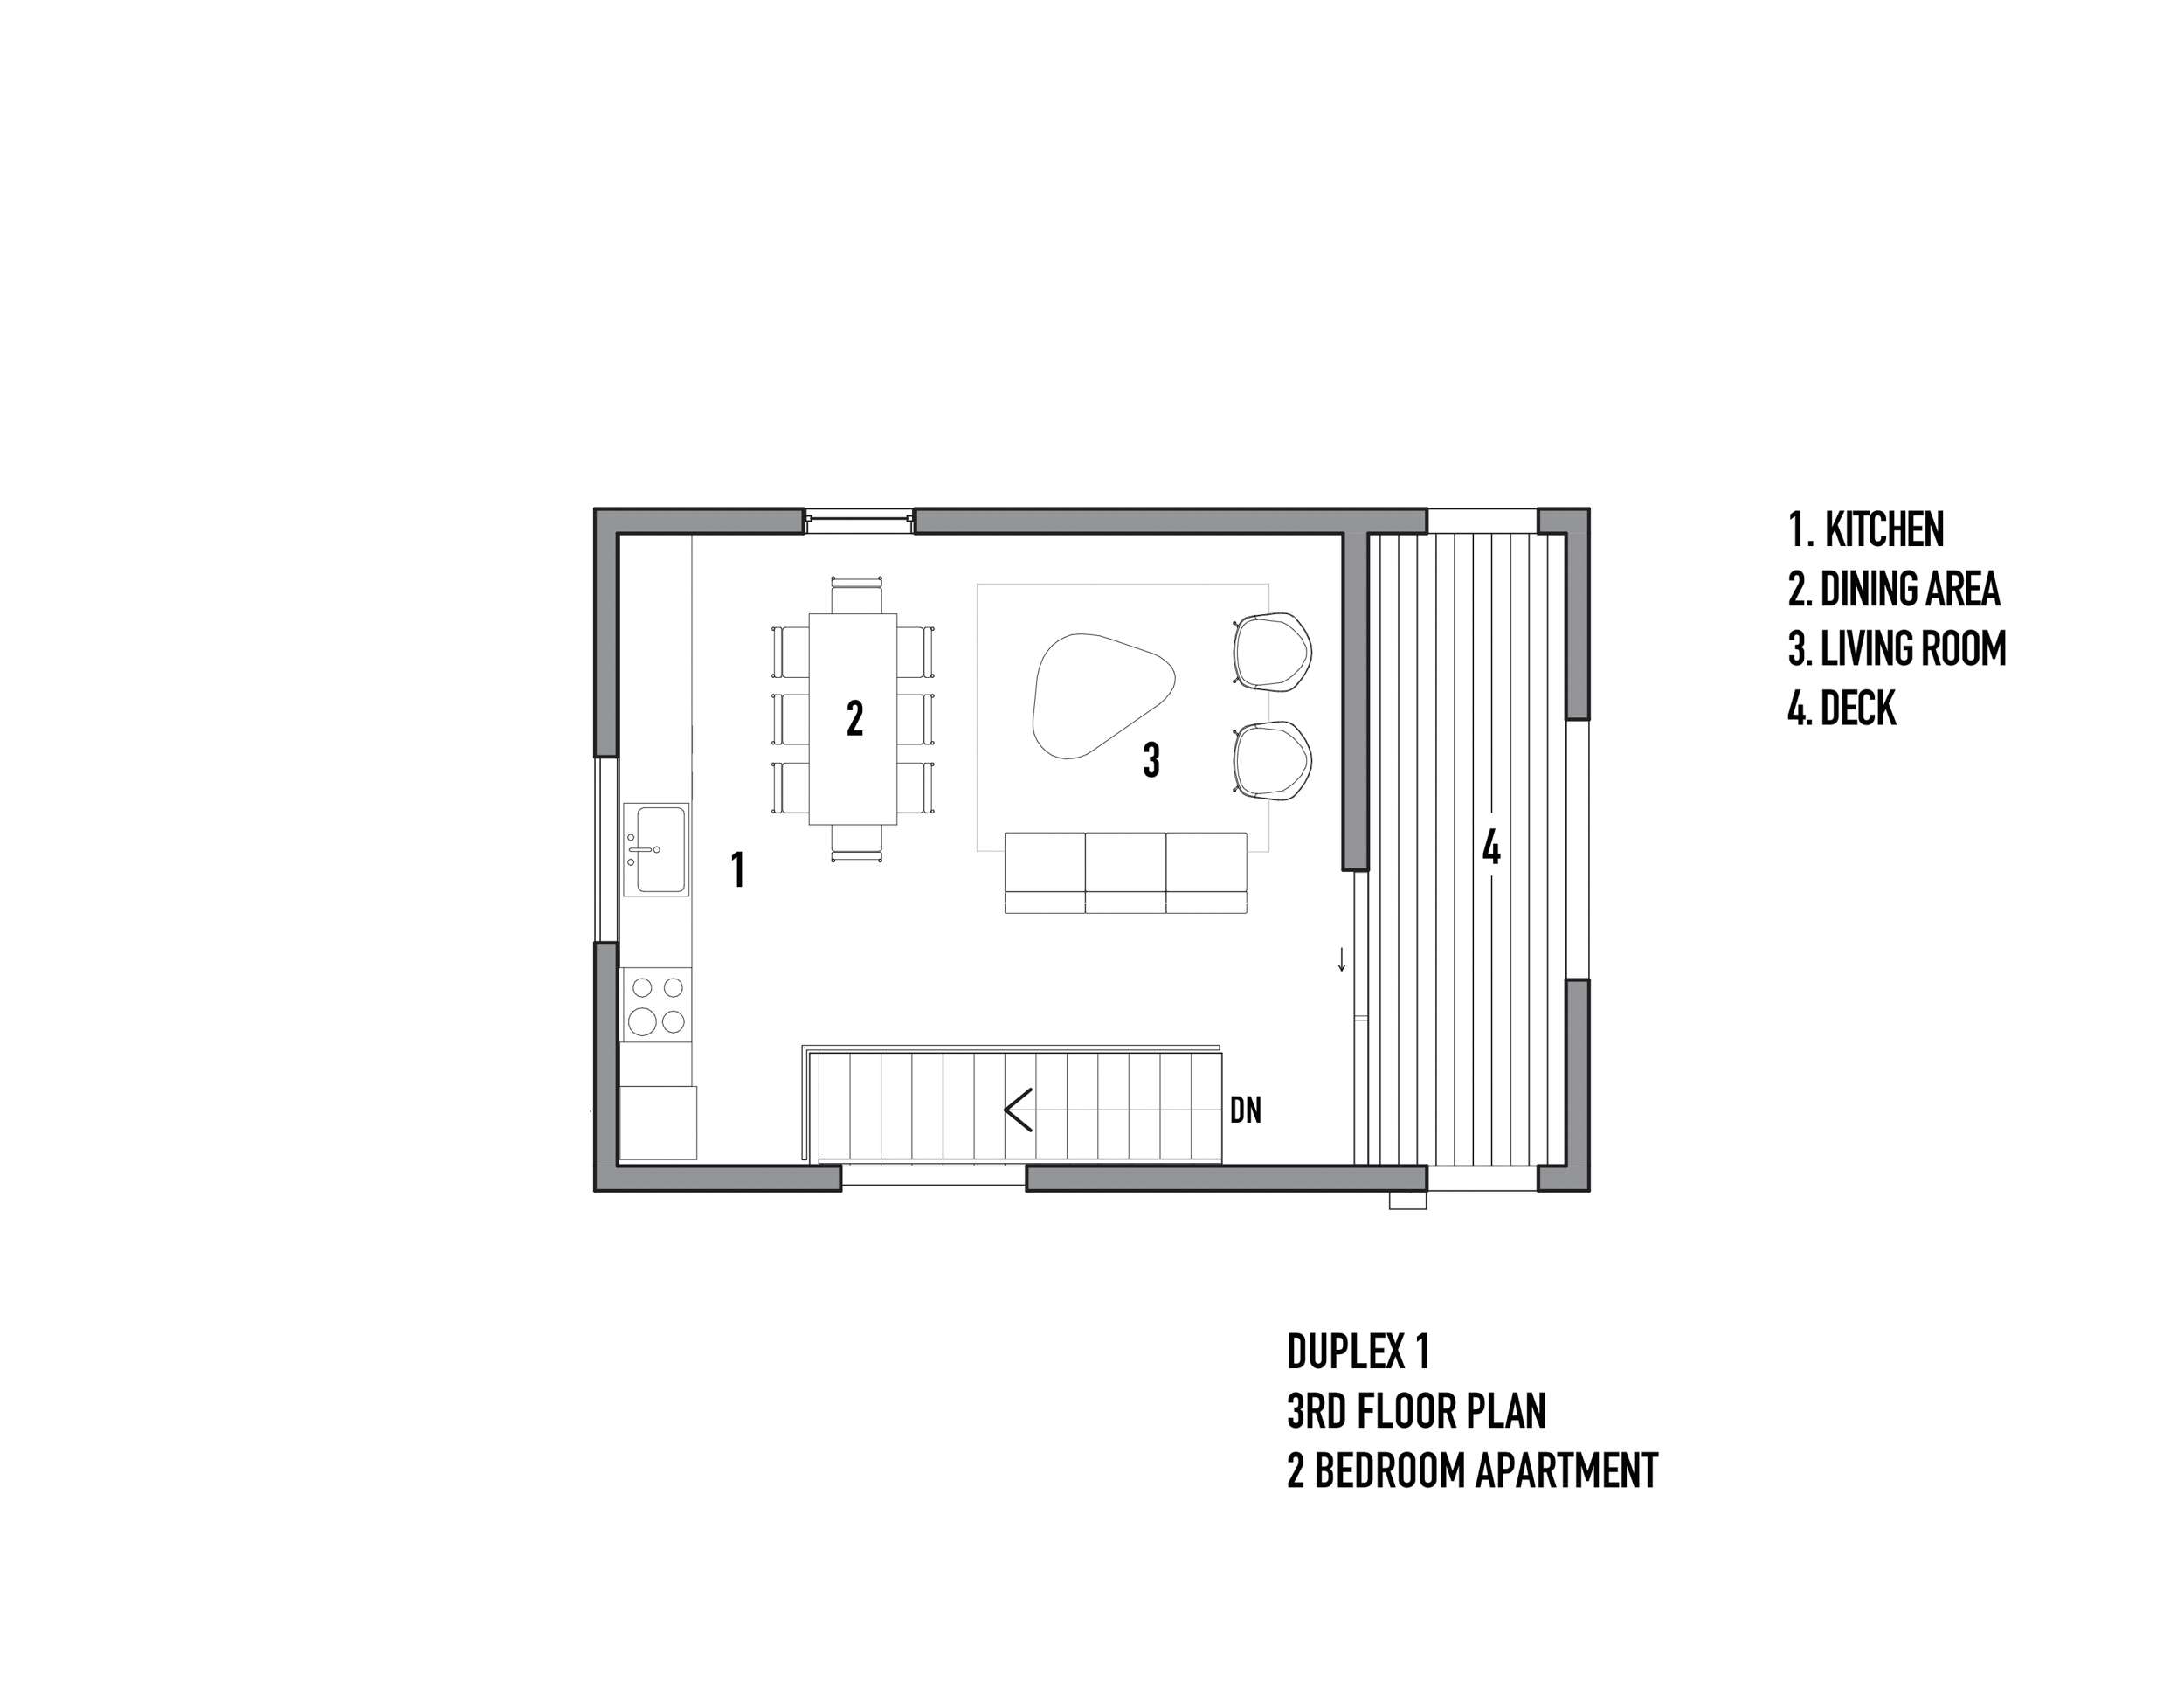 wc-studio-twin-peaks-tacoma-plan-duplex-living-2.jpg